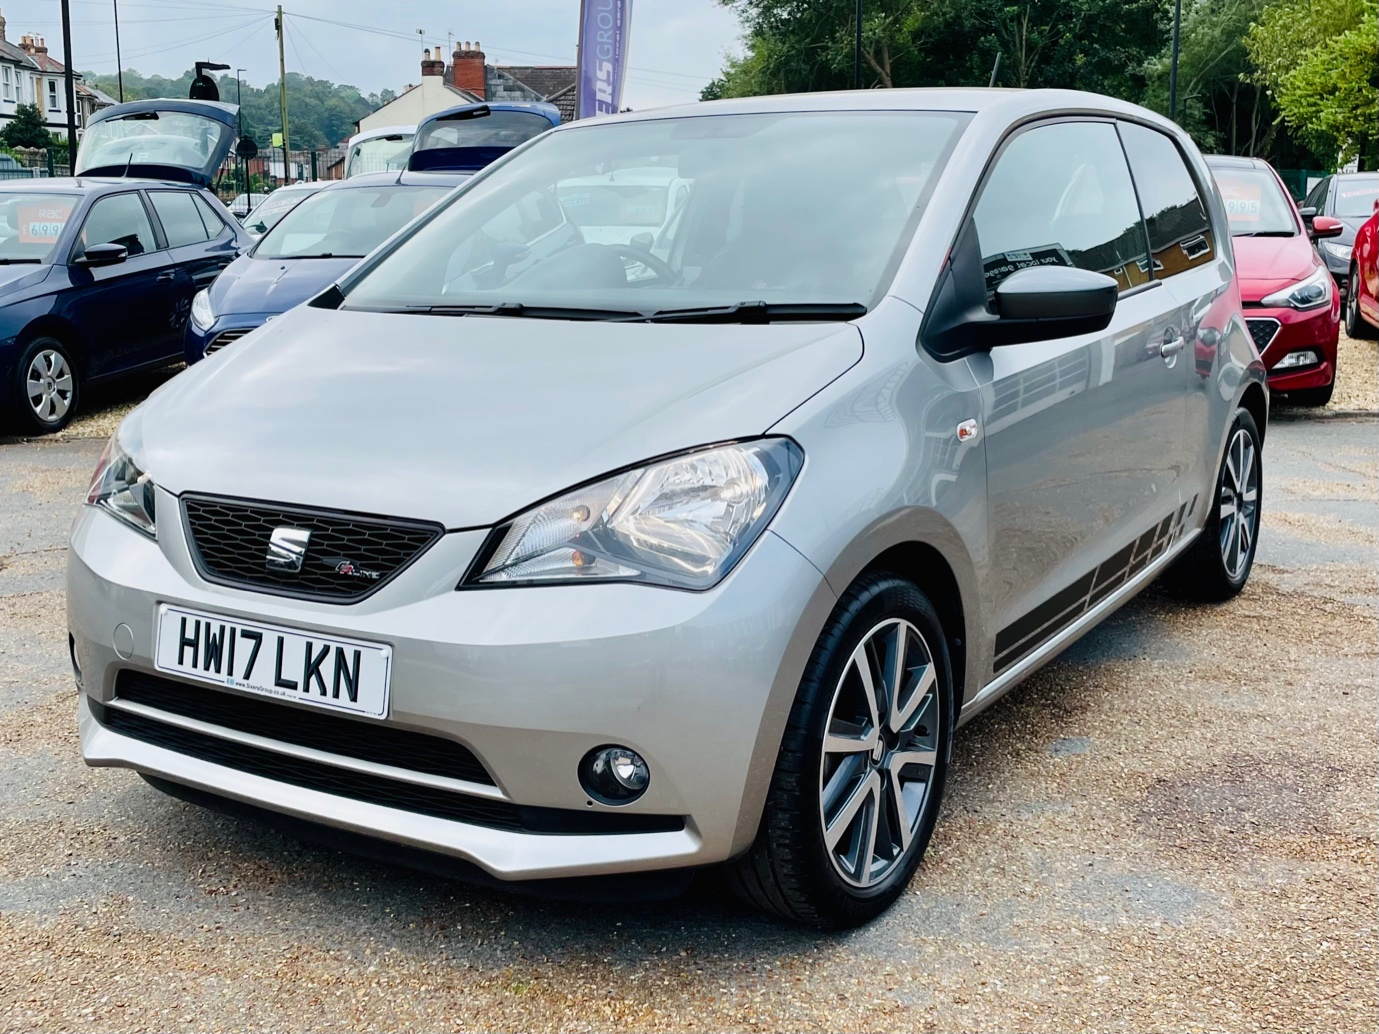 Car For Sale Seat Mii - HW17LKN Sixers Group Image #6